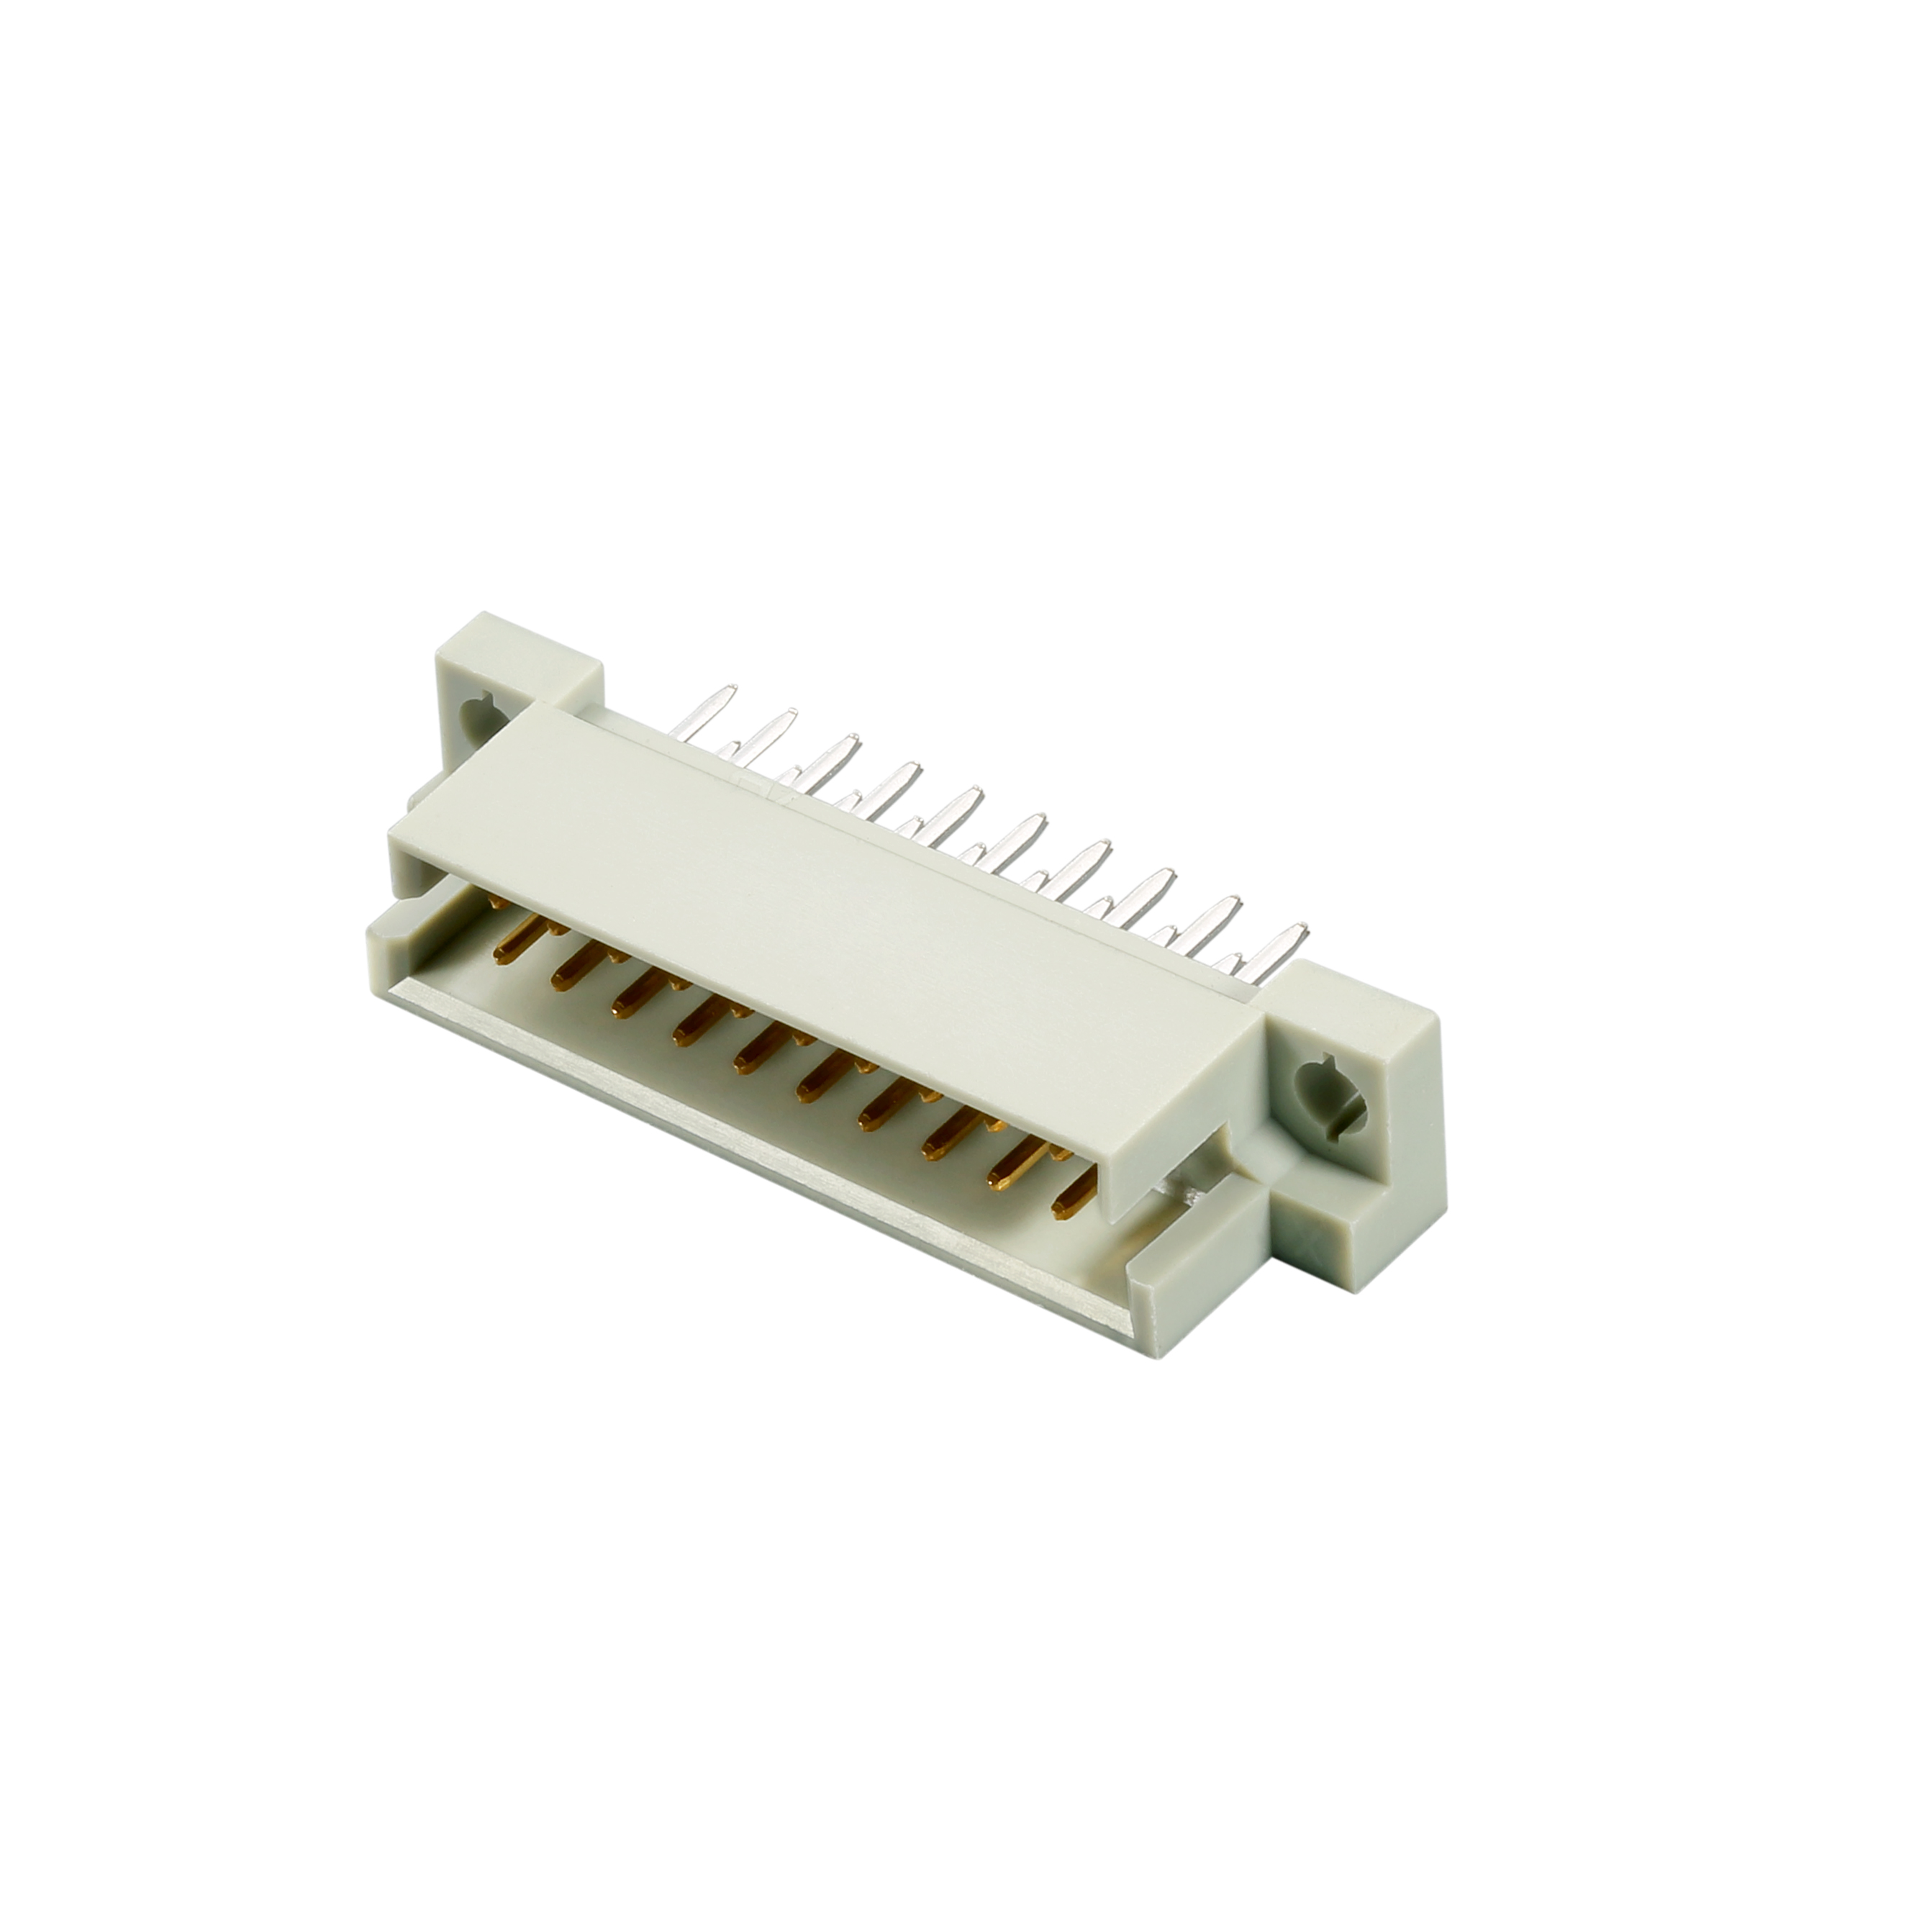 PH2.54mm DIN 41612 Male Dual-row Straight Type